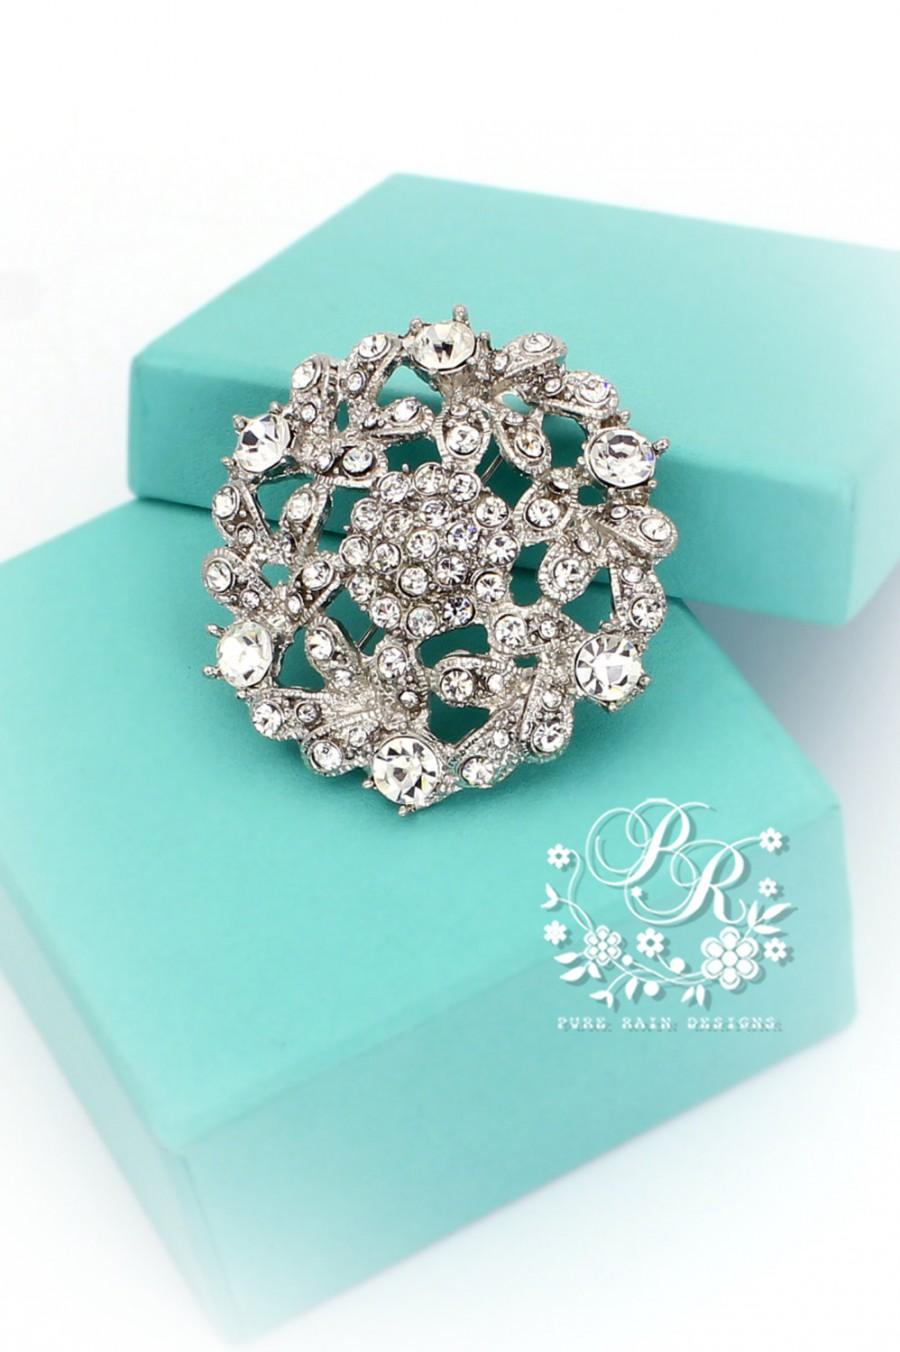 Wedding - wedding brooch Rhinestone Crystal brooch adornment Sash Applique Buckle Hair comb Clutch Bridal Jewelry